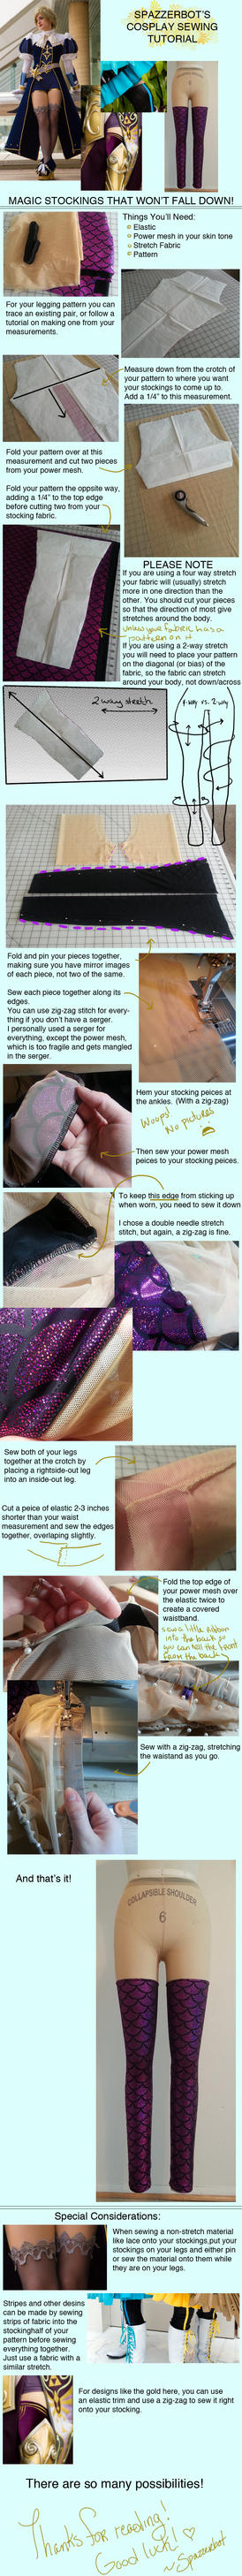 Cosplay Tutorial: Stockings That Won't Fall Down by spazzer-bot